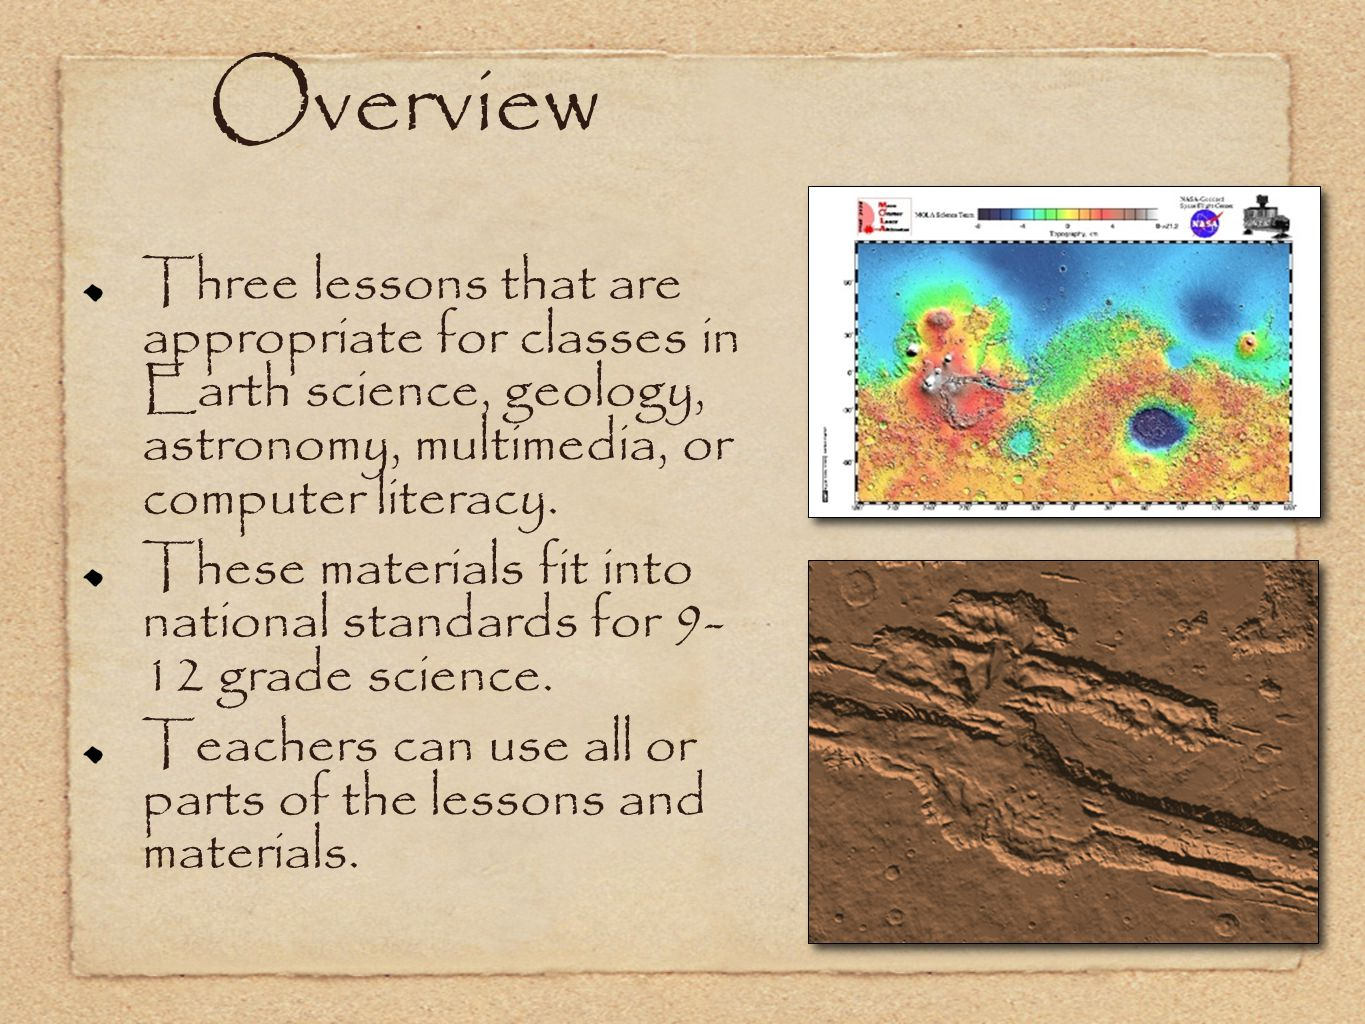 Overview Three lessons that are appropriate for classes in Earth science, geology, astronomy, multimedia, or computer literacy.